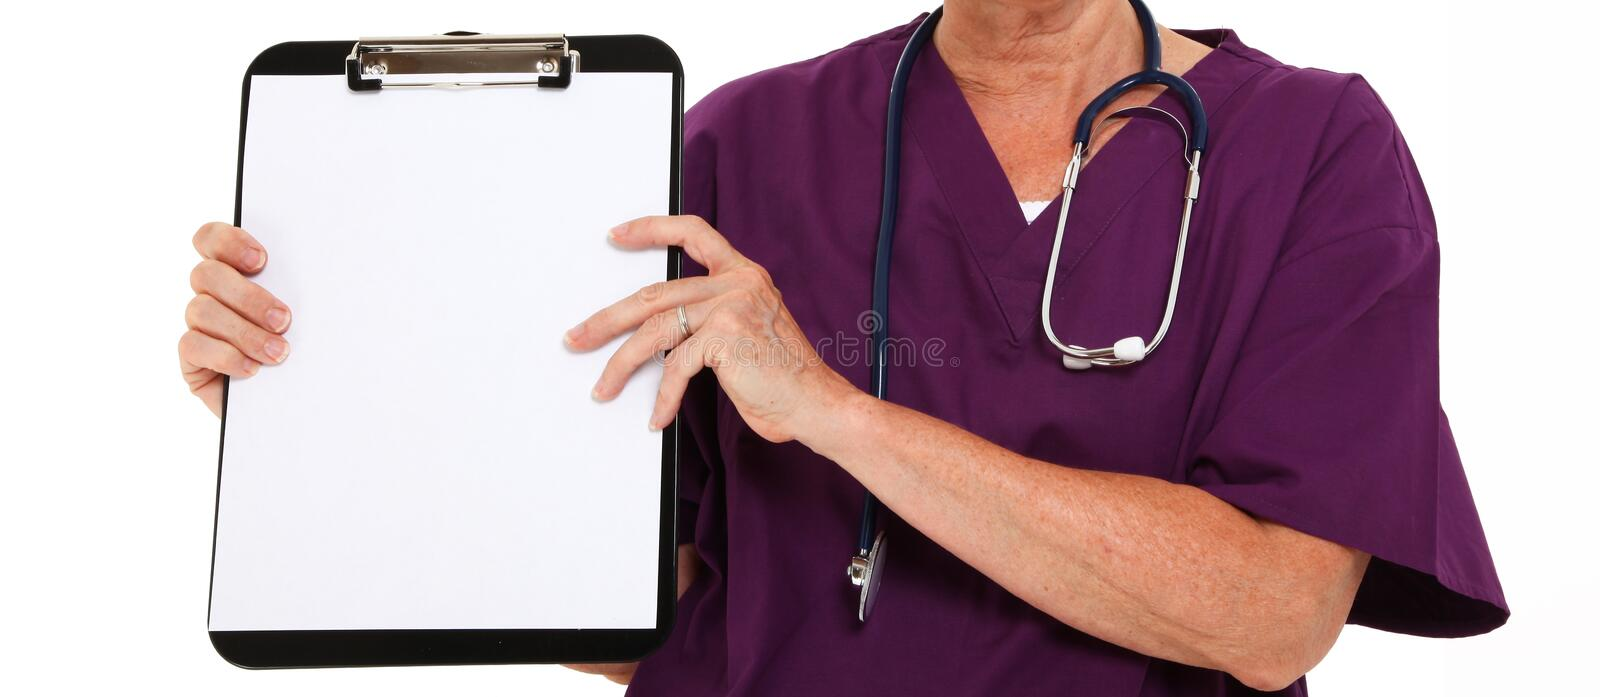 Physician Holding Clipboard stock photo